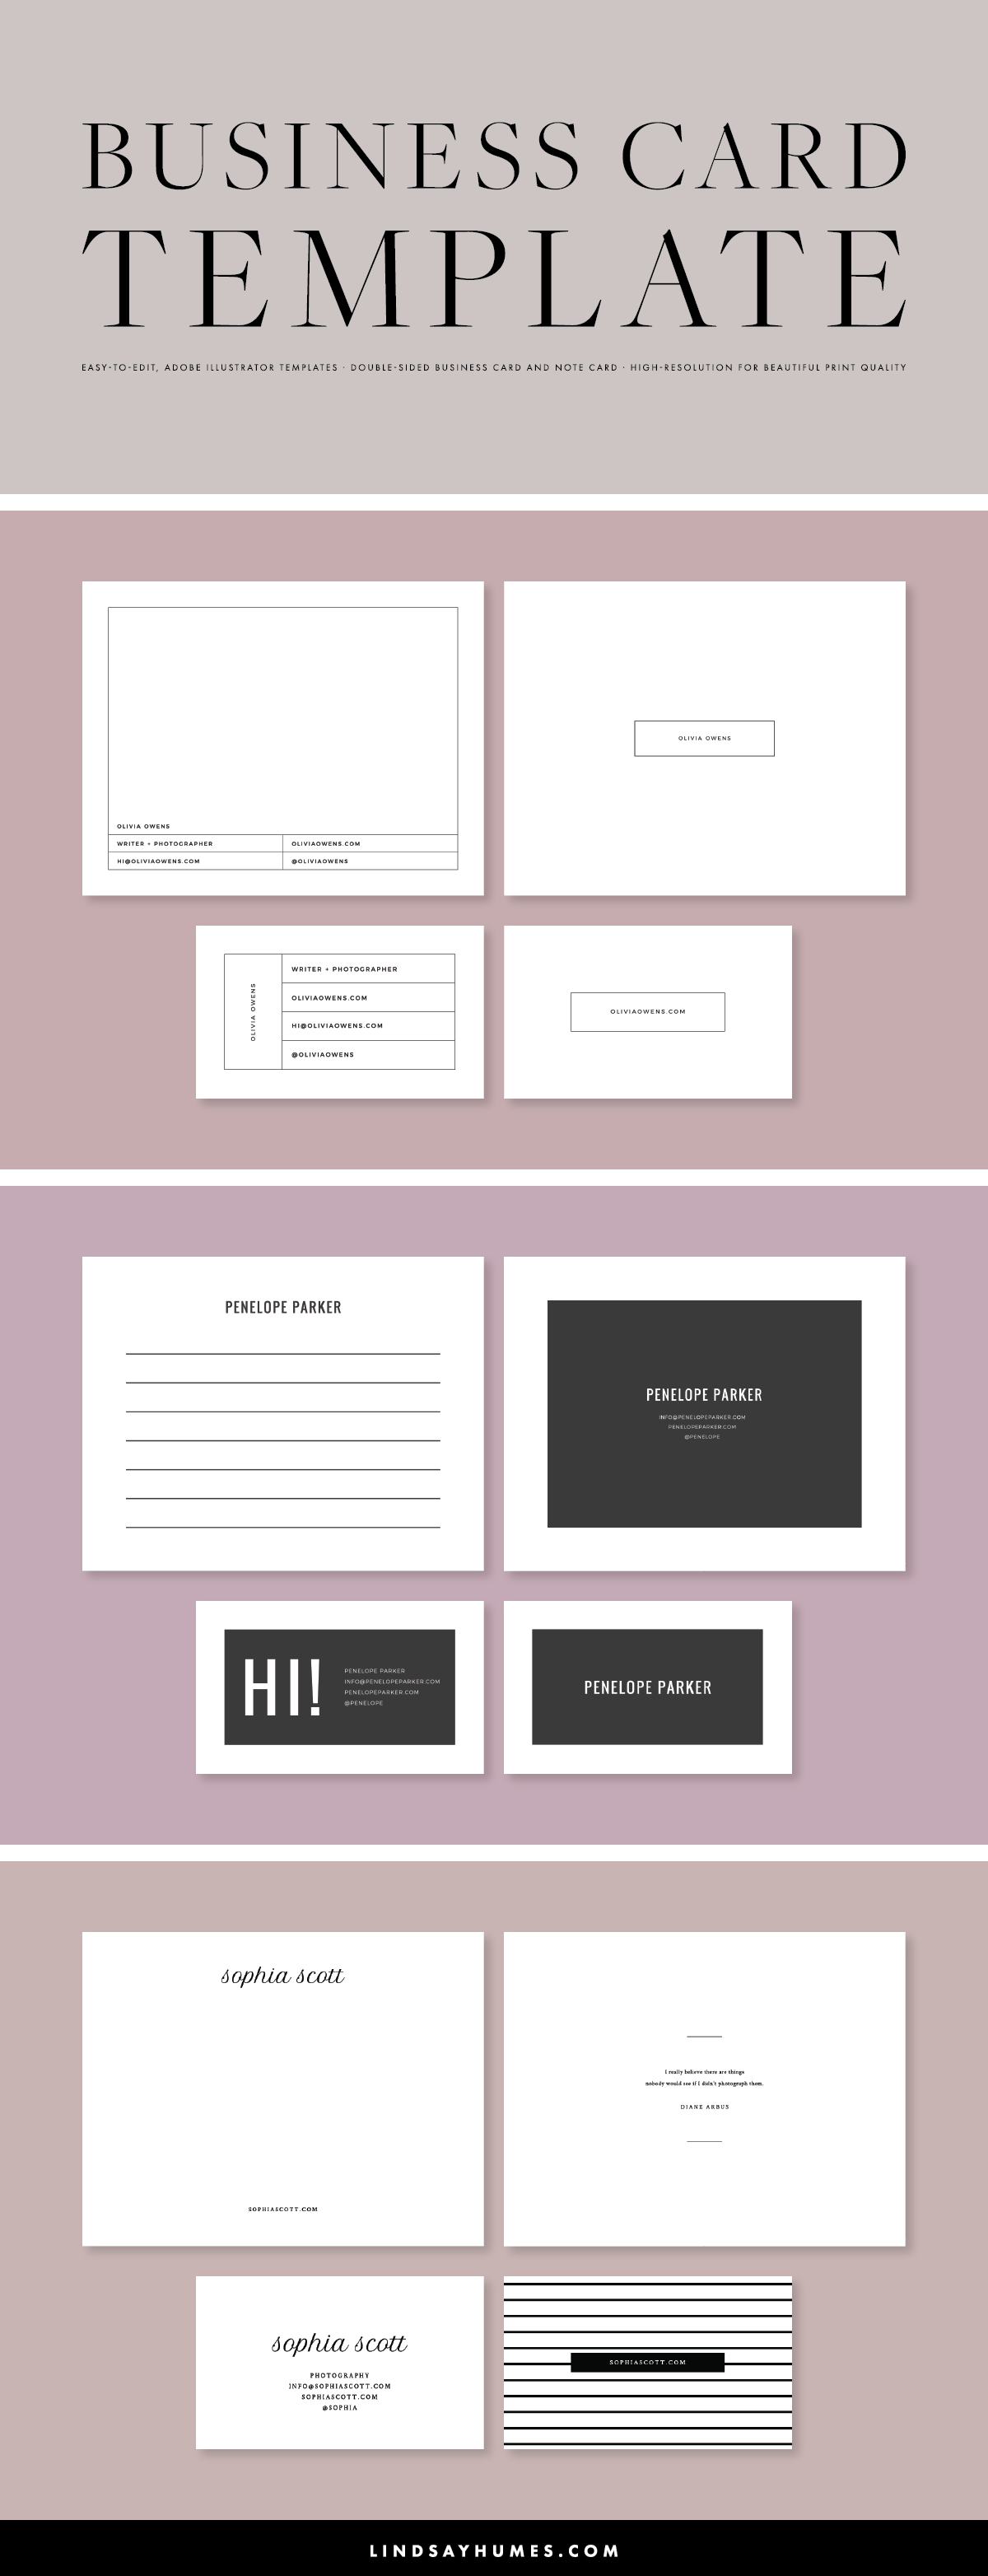 Beautiful Multi Purpose Business Card Template In Adobe Illustrator Pairs Well With Media Ki Blog Themes Wordpress Small Business Tips Business Card Template